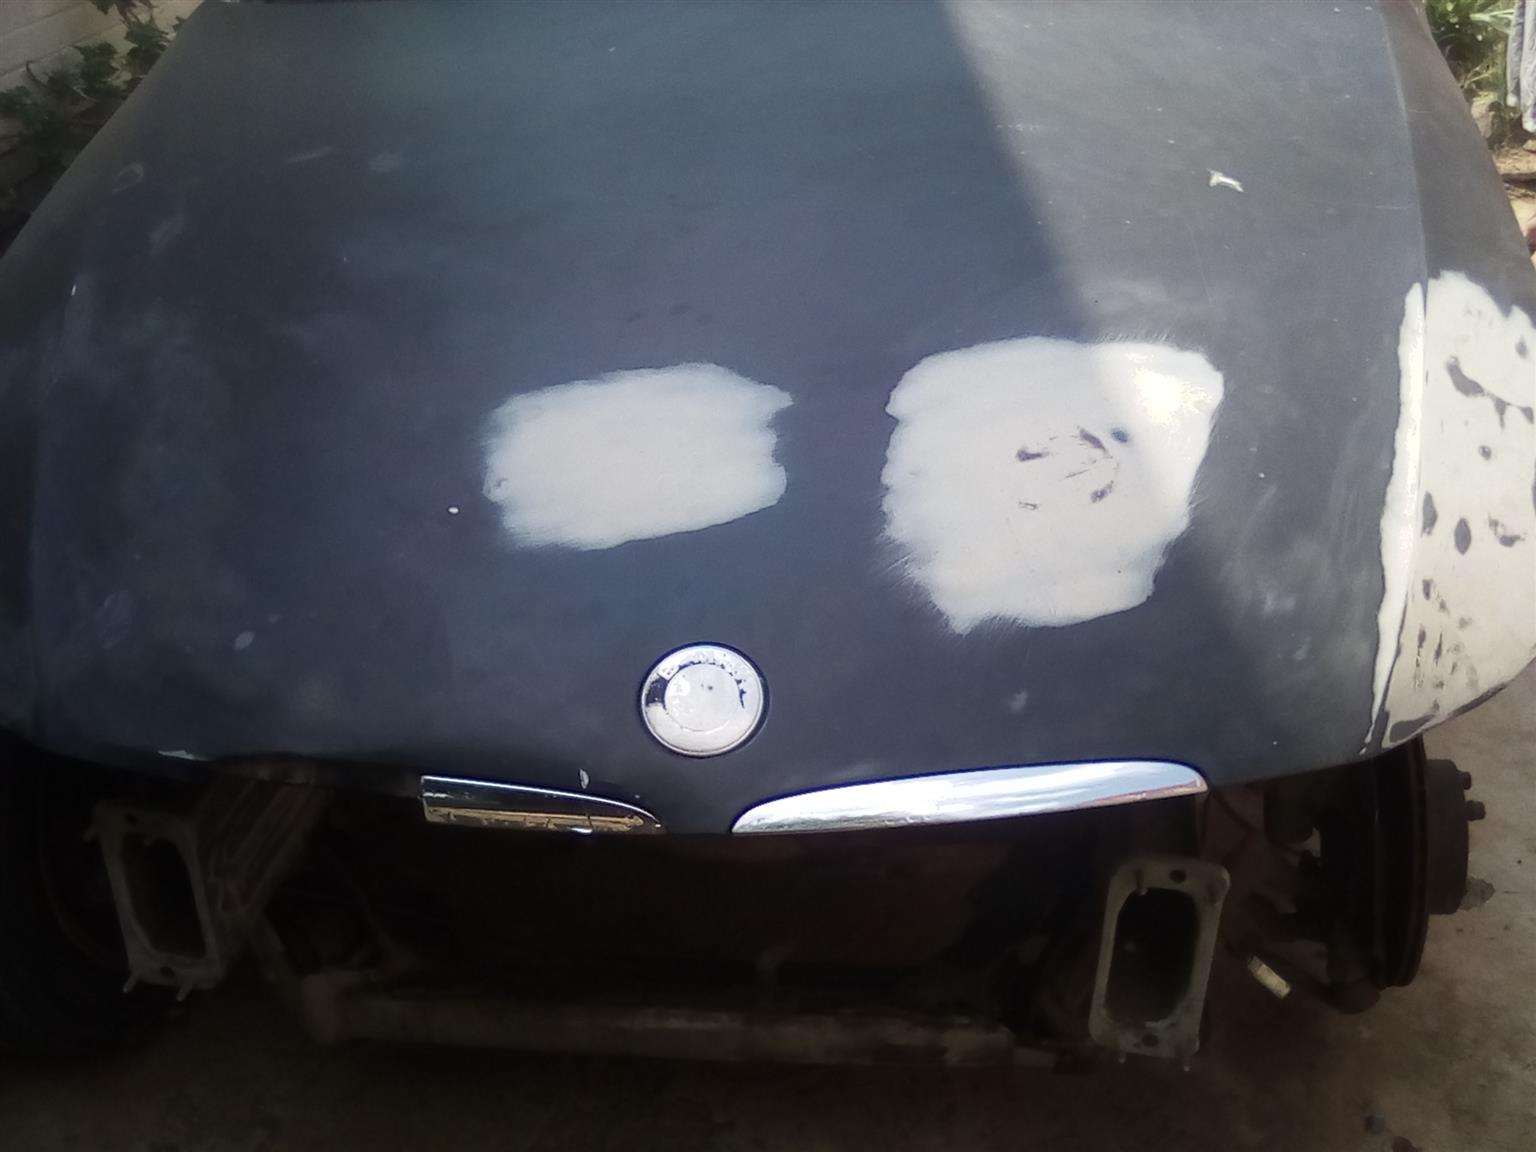 Body parts for sale for BMW(3 Series) E90 320d including several other parts price negotiable